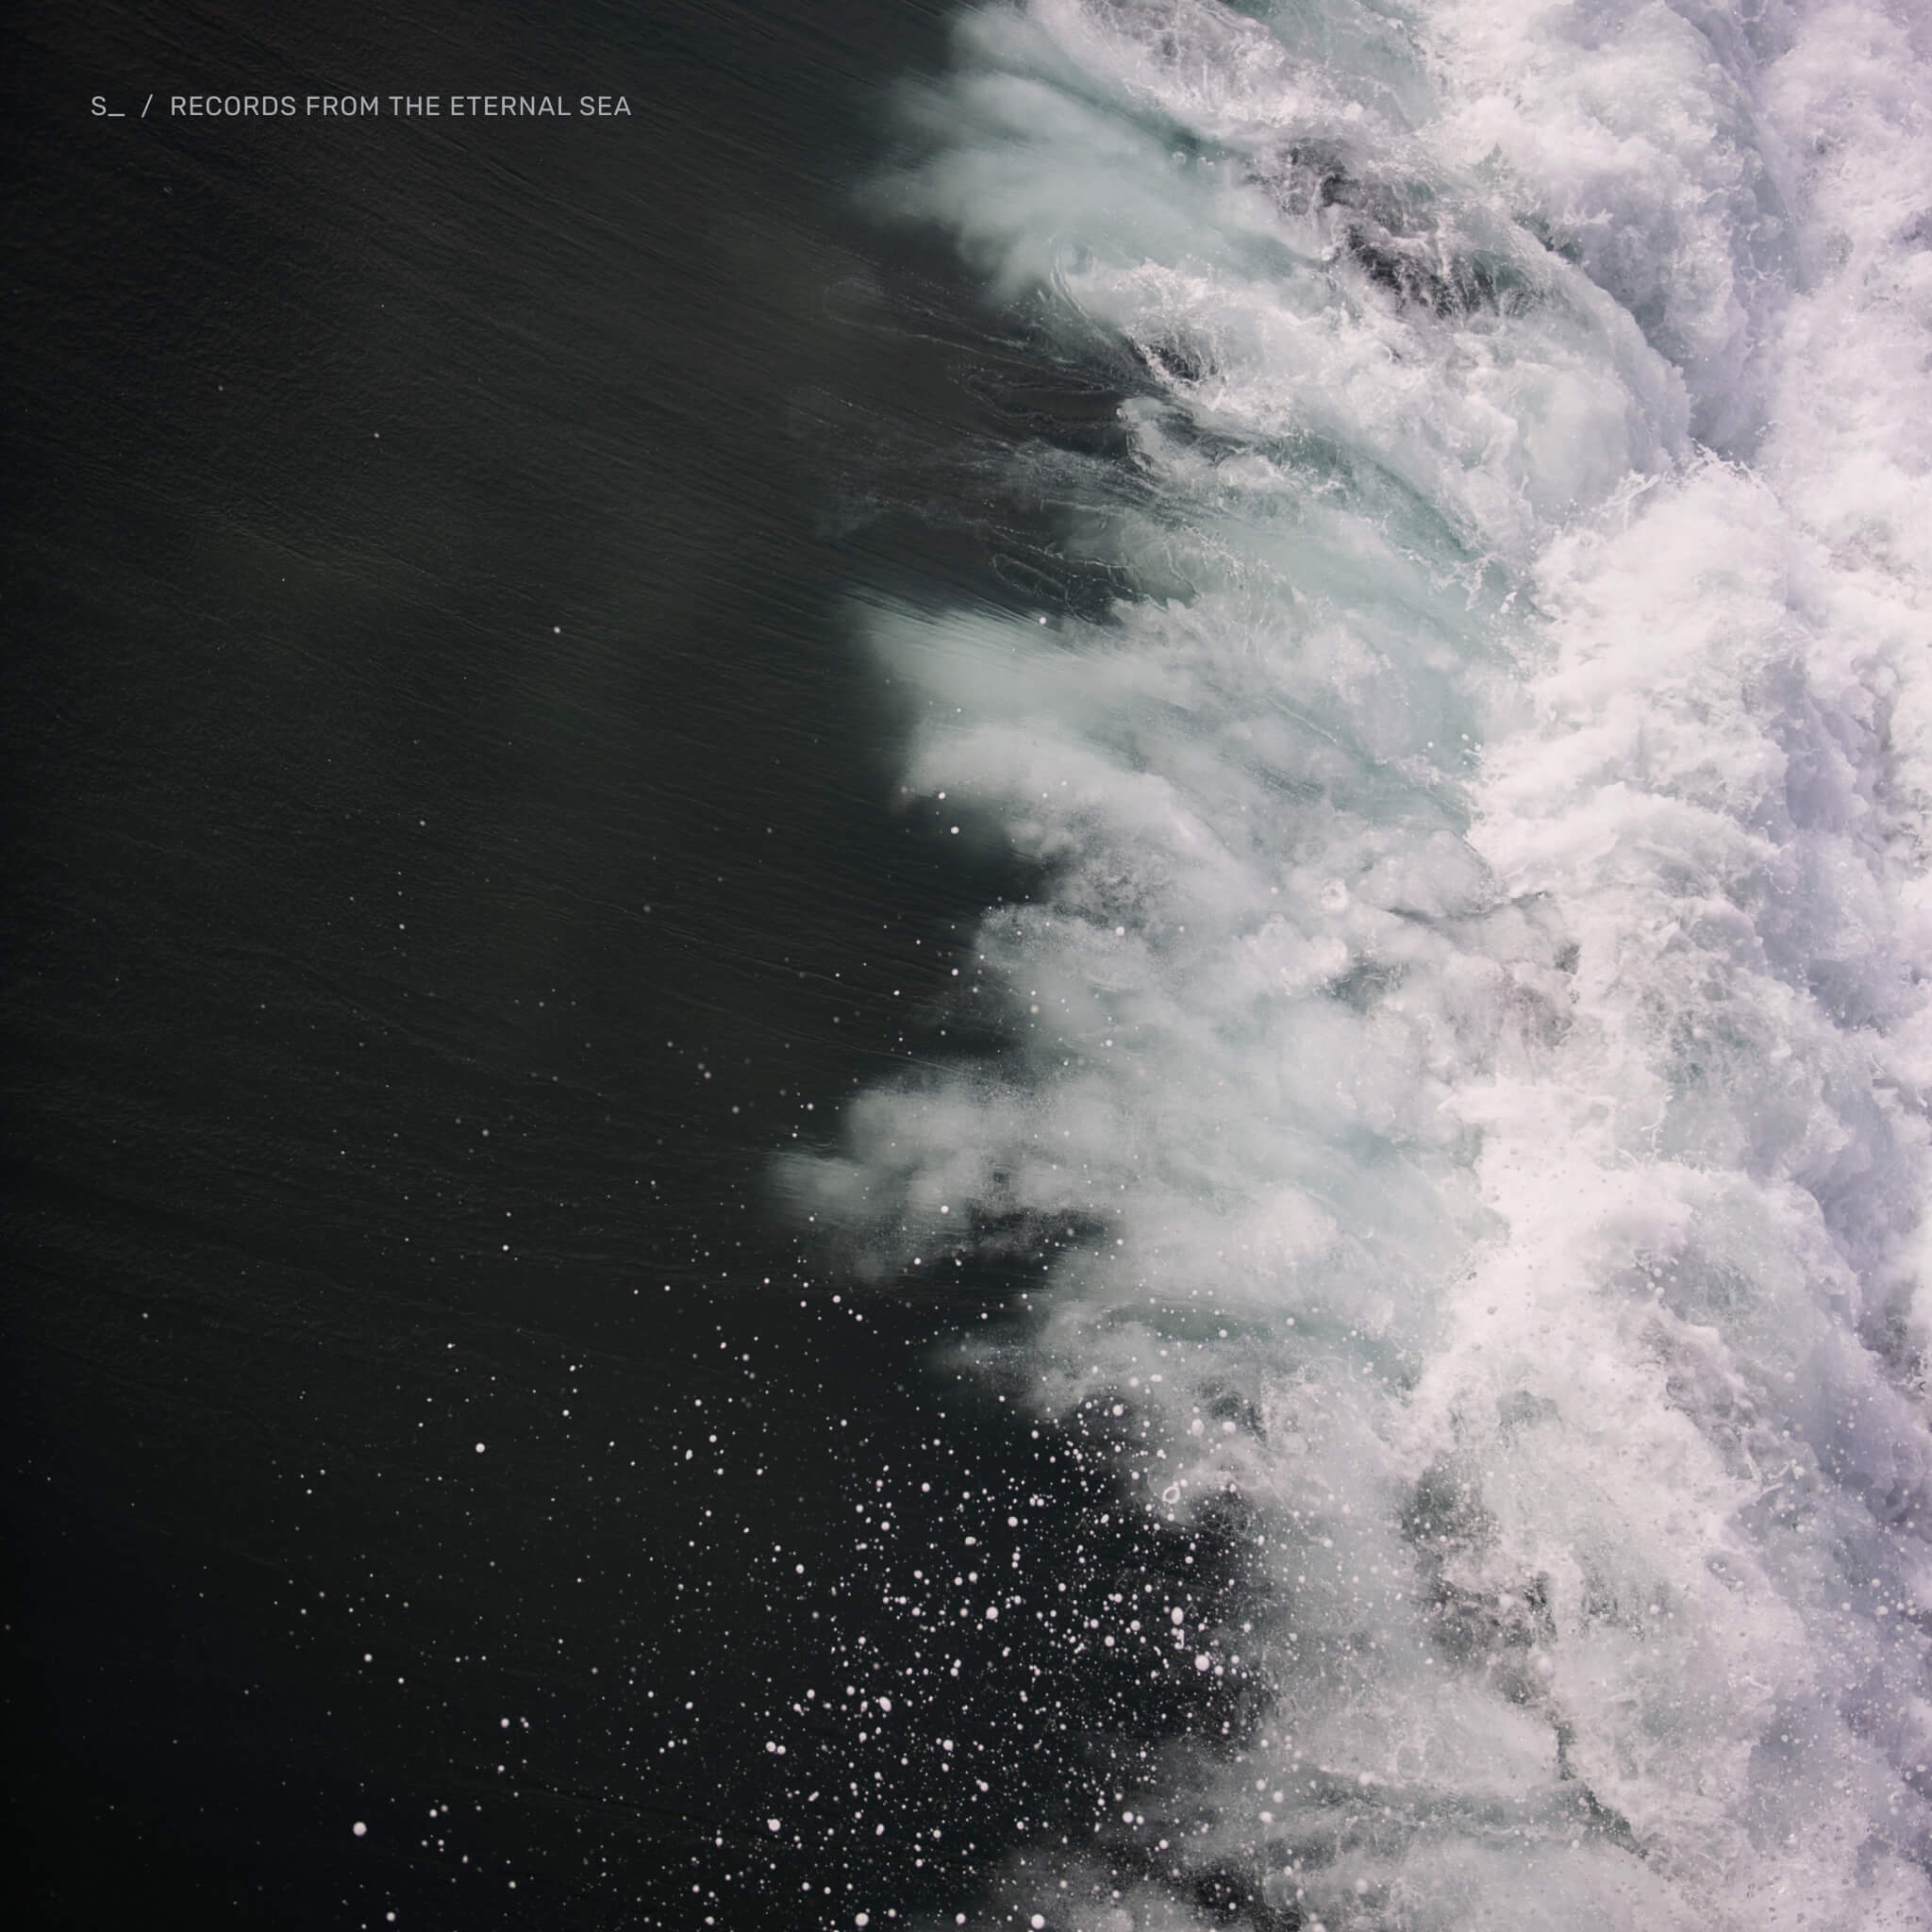 Image of the Records From the Eternal Sea album